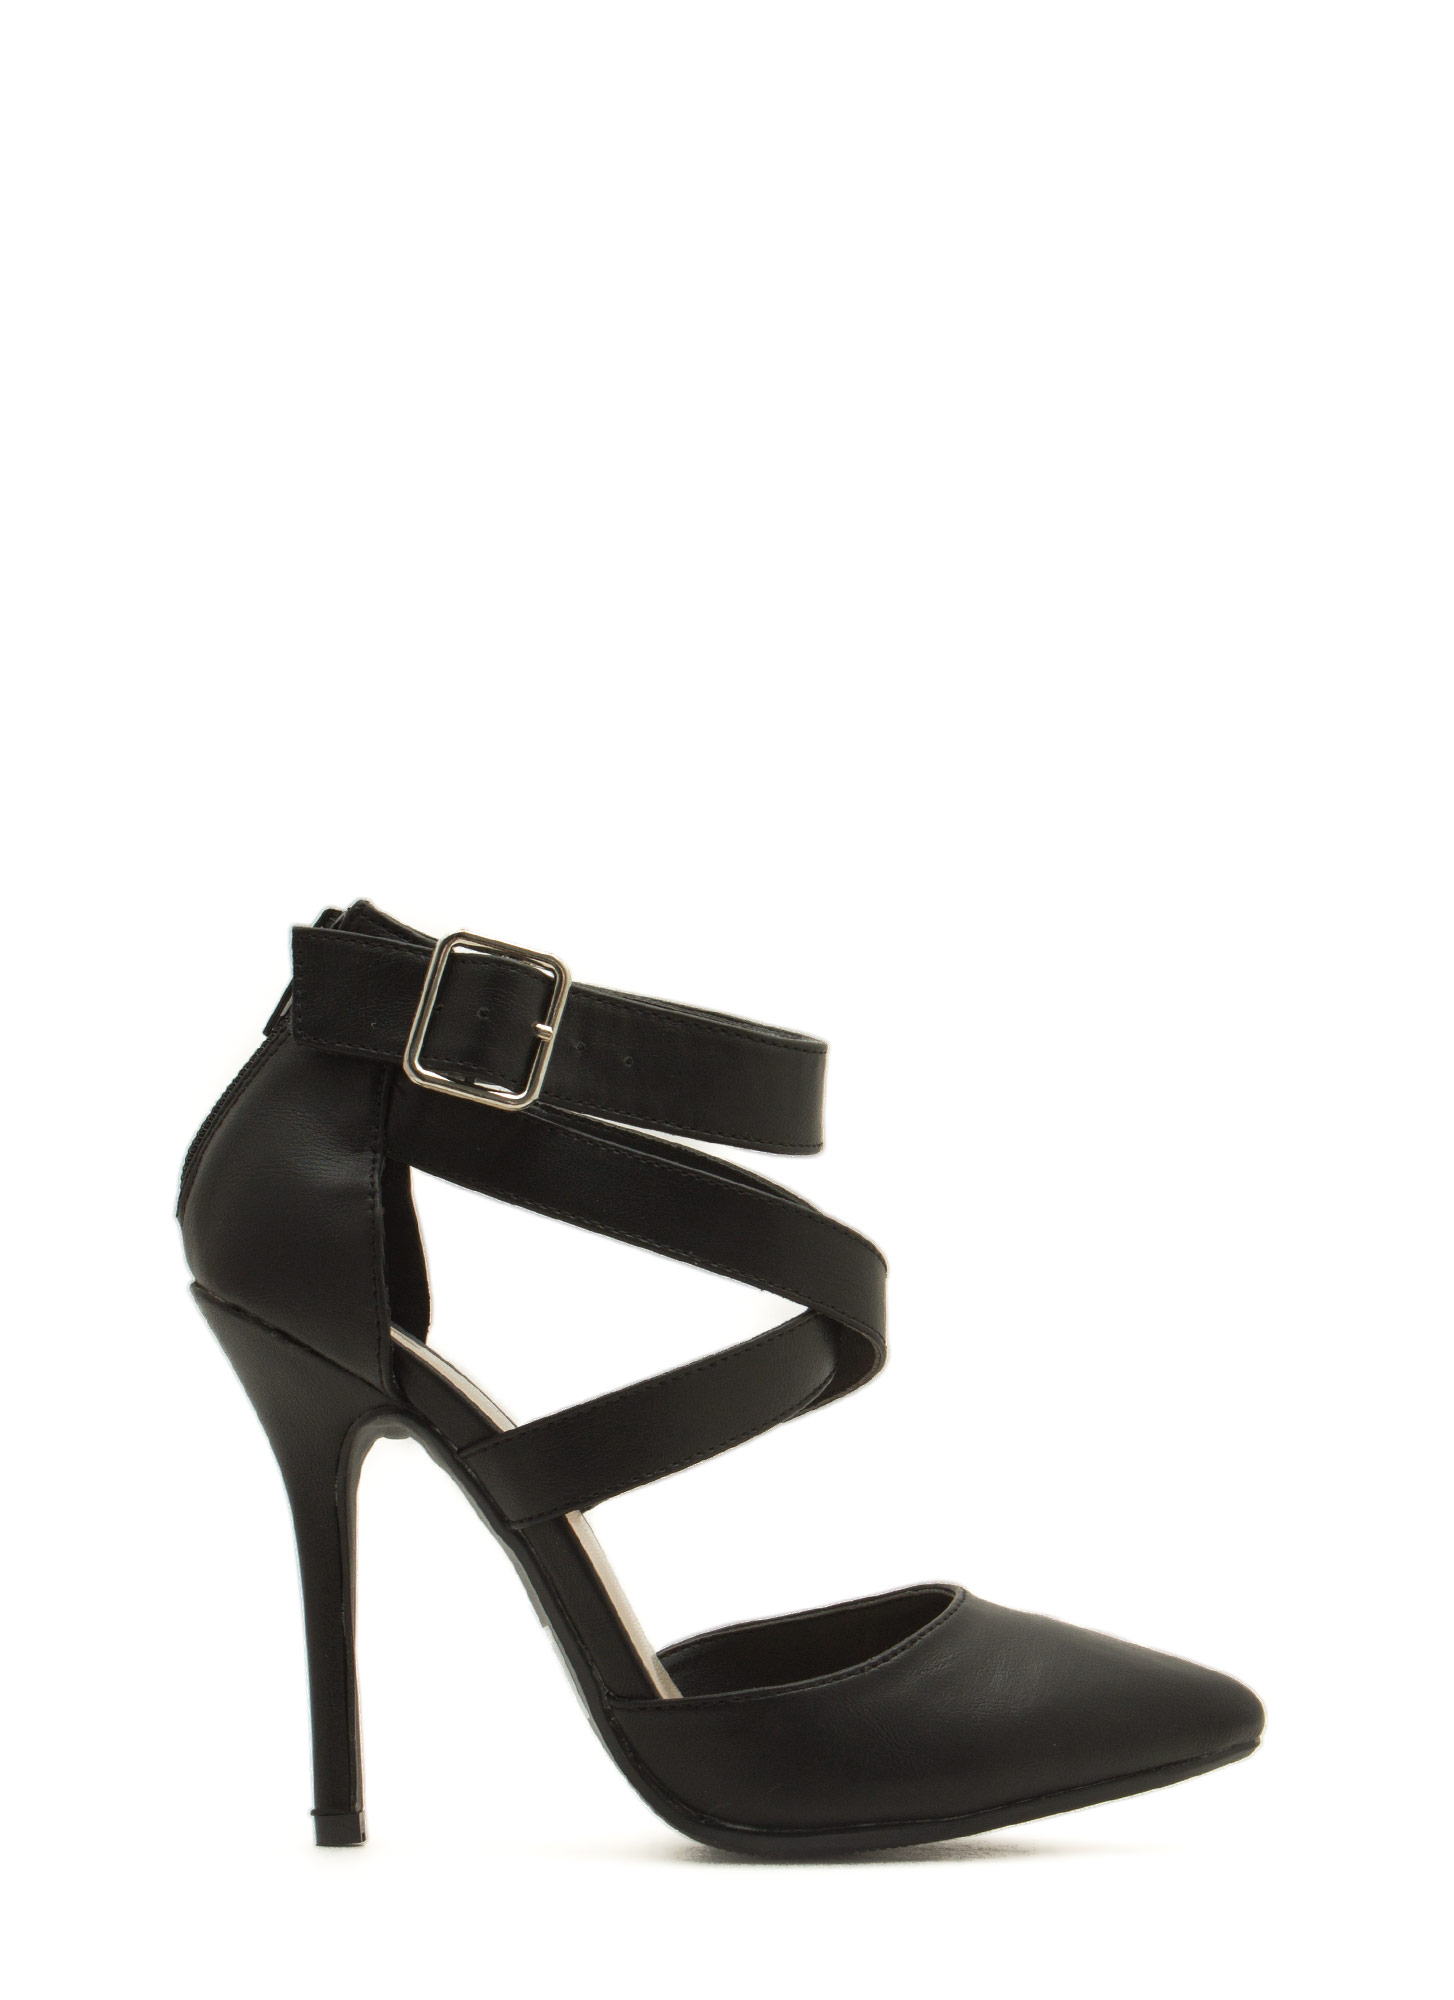 Wrapped Crisscrossed Heels BLACK